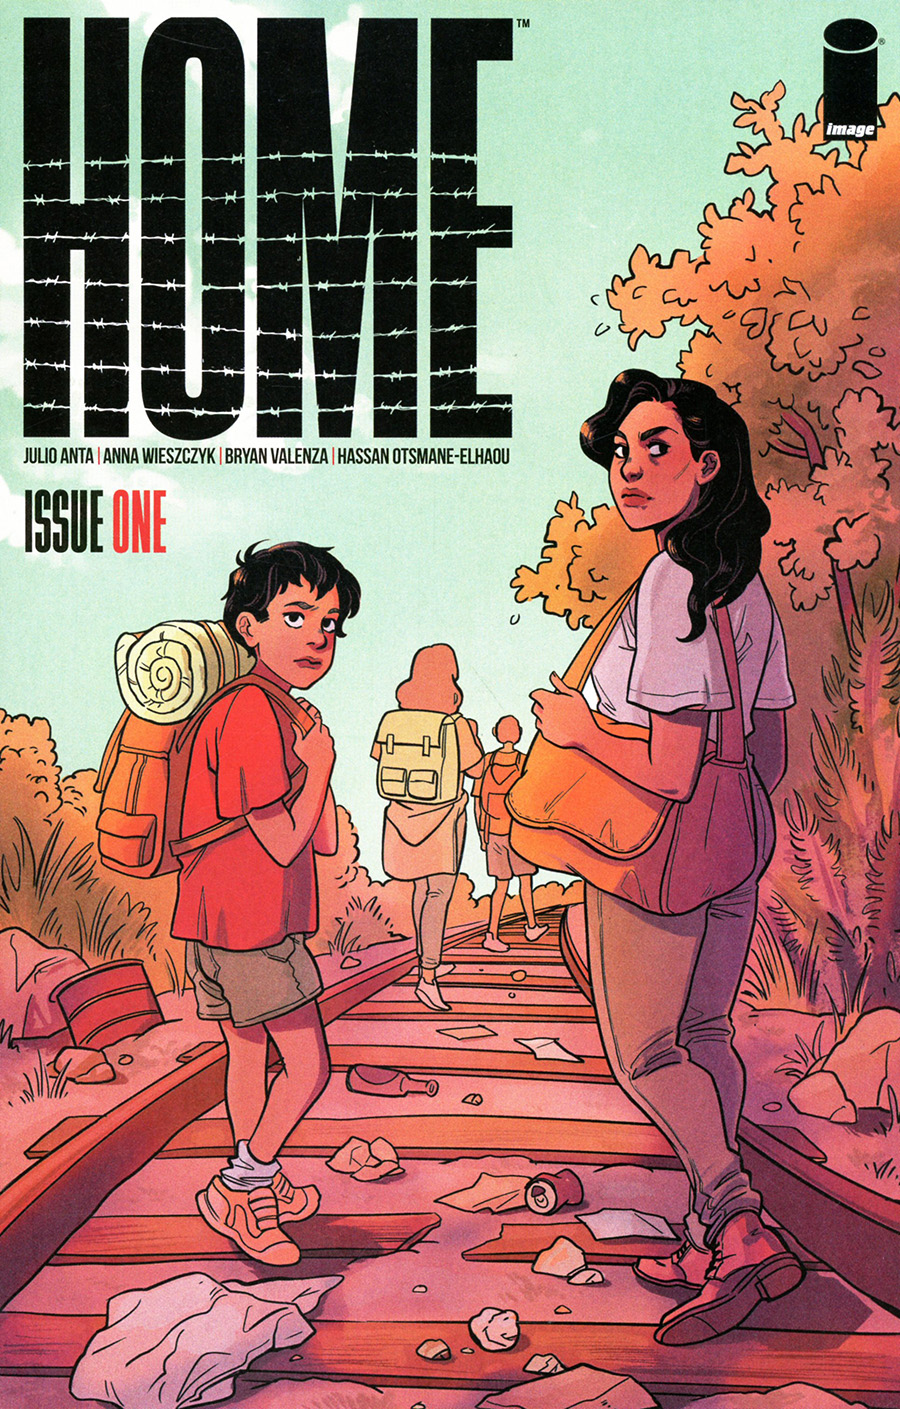 Home (Image Comics) #1 Cover A Regular Lisa Sterle Cover